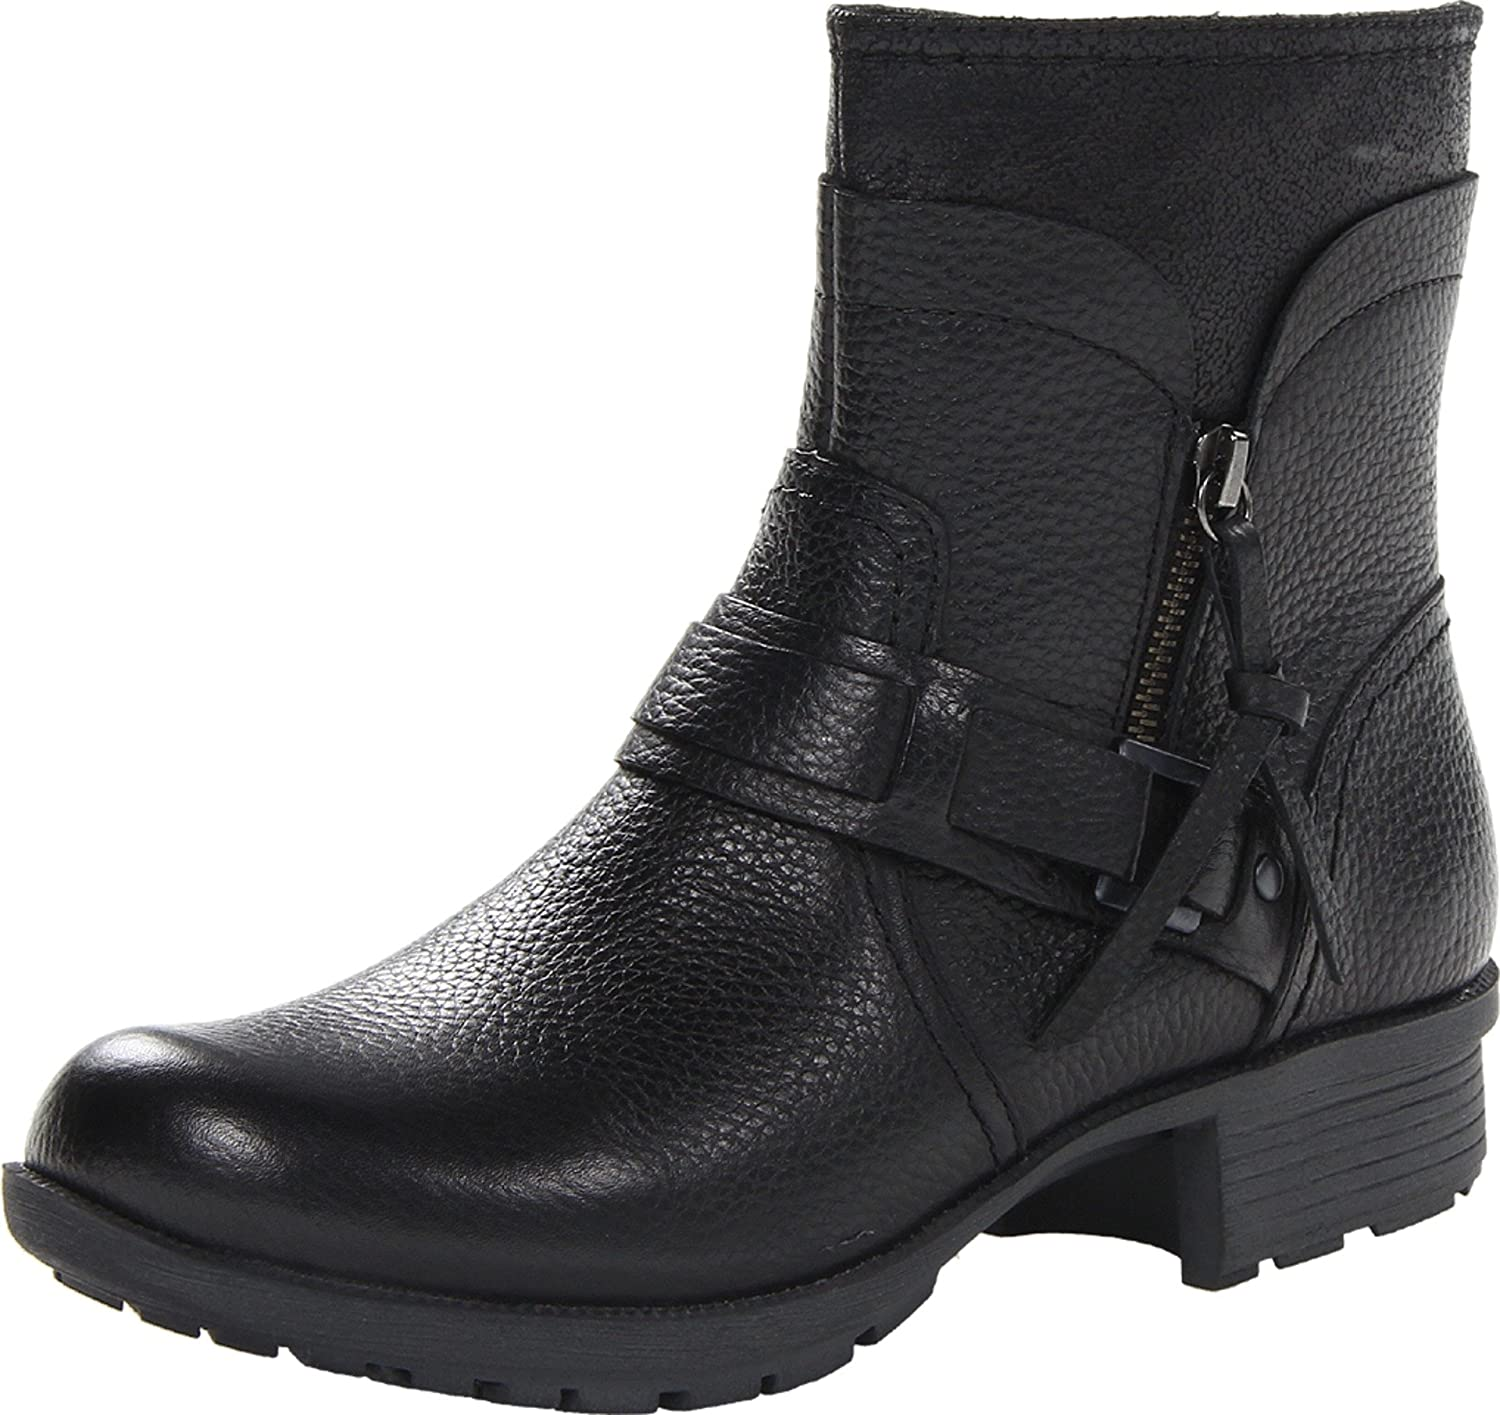 Clarks Women's Riddle Avant Boot